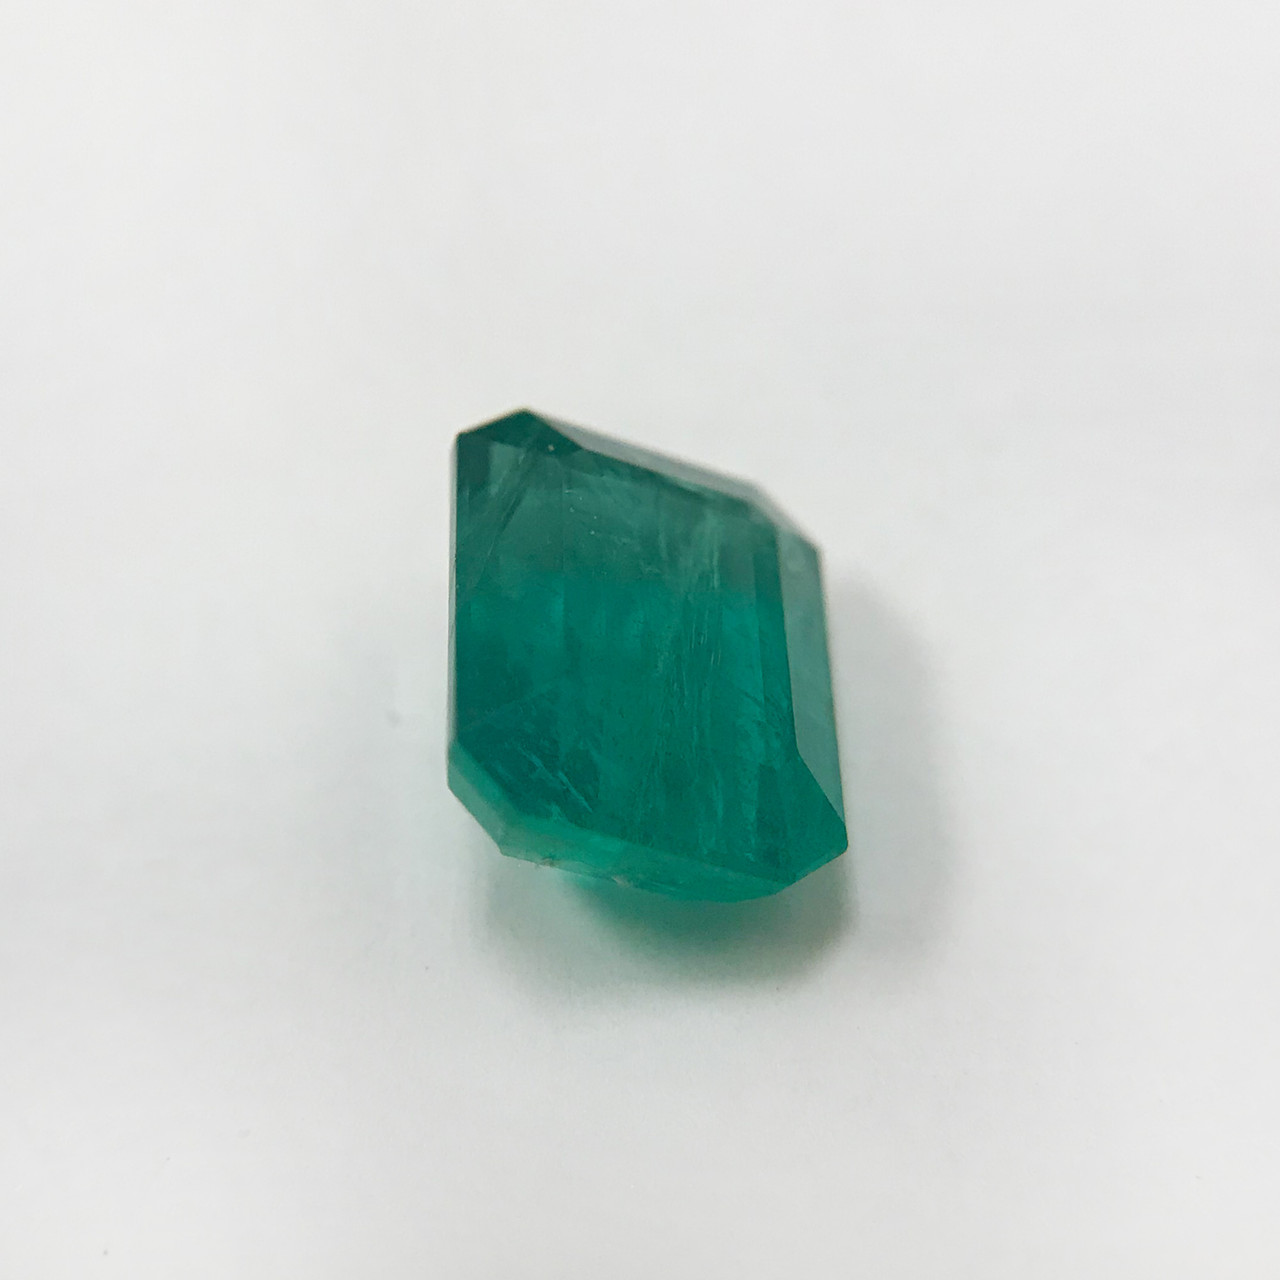 9.5mm x 7.5mm Natural Green Emerald Gemstone